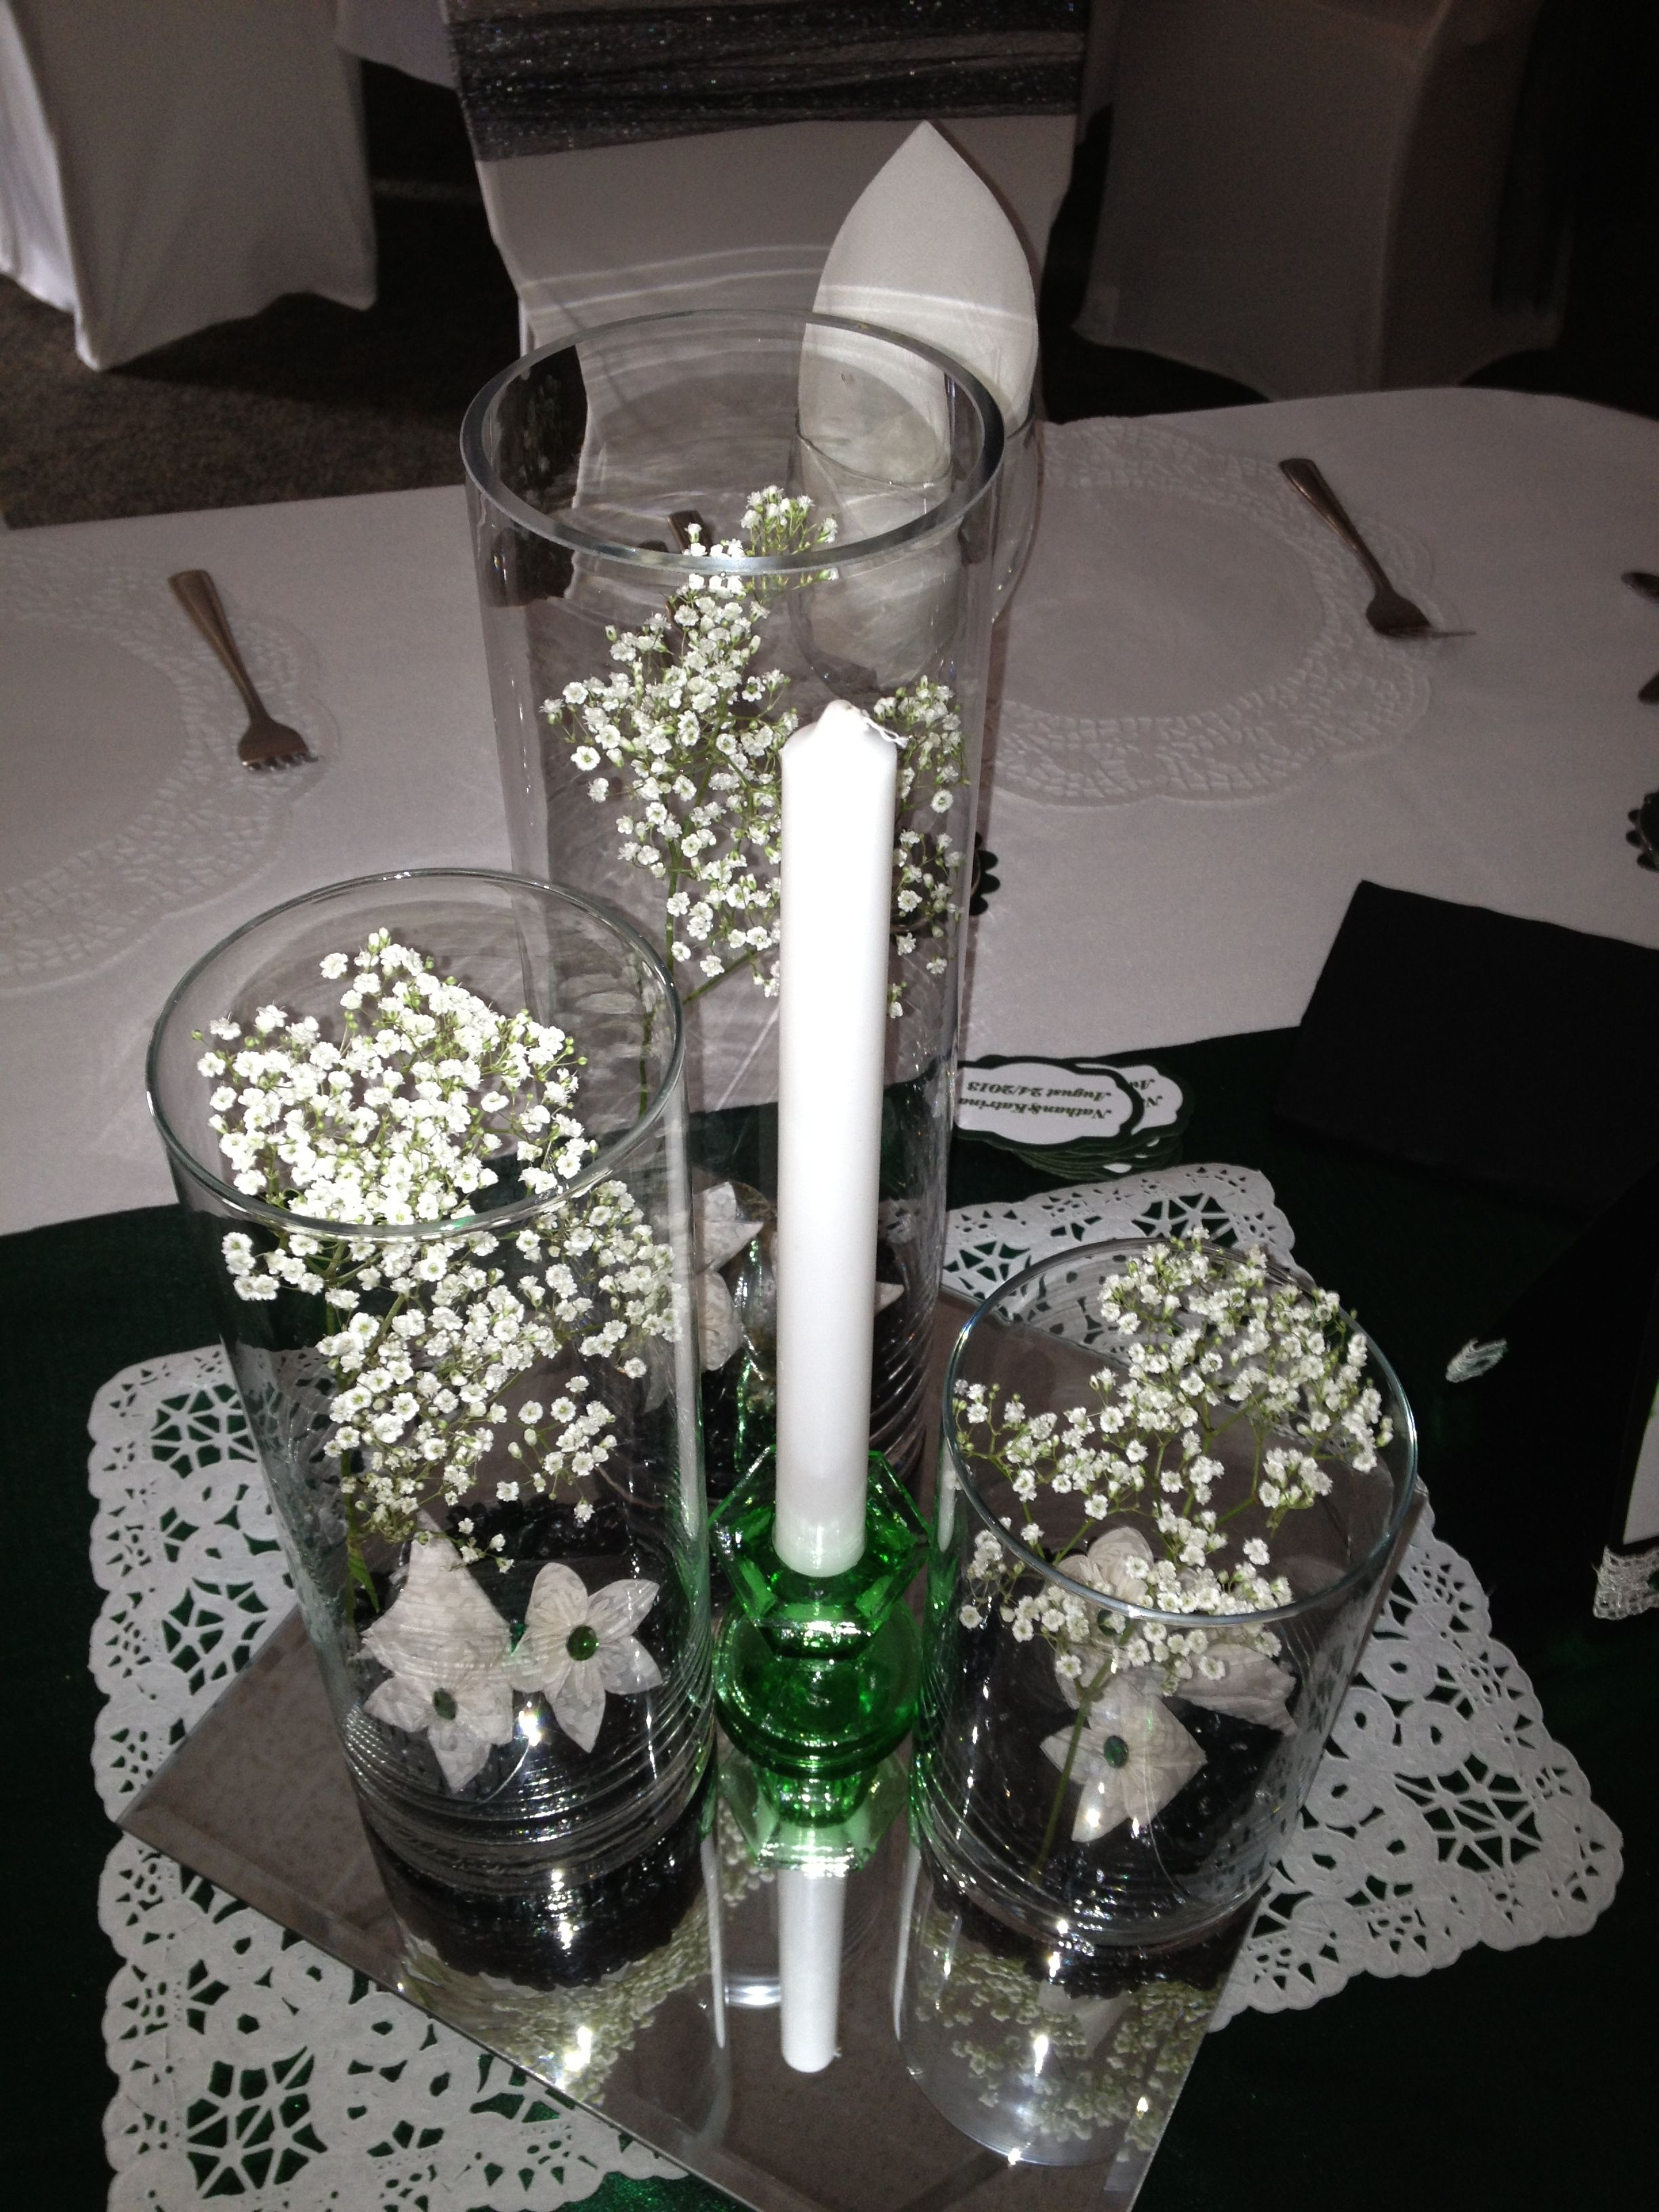 Centerpiece included tiered cylinder vases with black